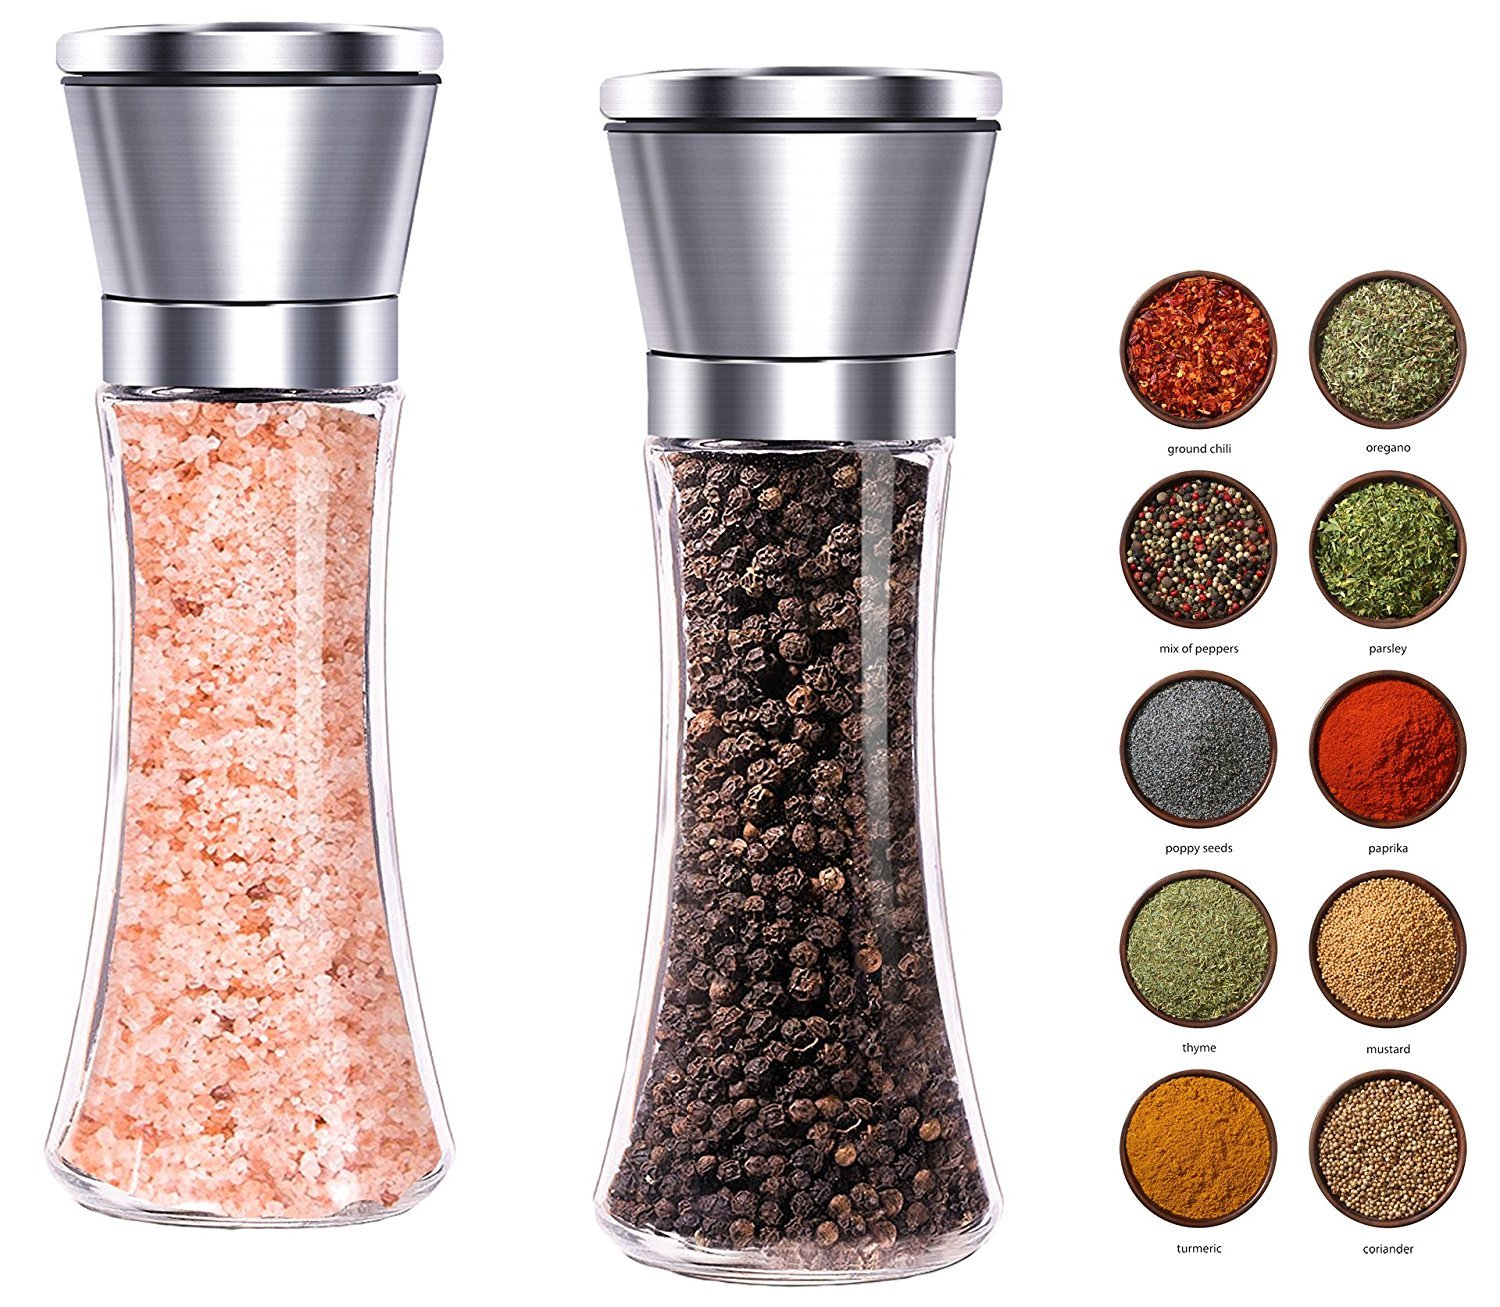 wisewifeナイフ削り器、キッチンナイフシャープシステム YMQ-01 B06Y1WDVFV  Pepper and Salt Grinder